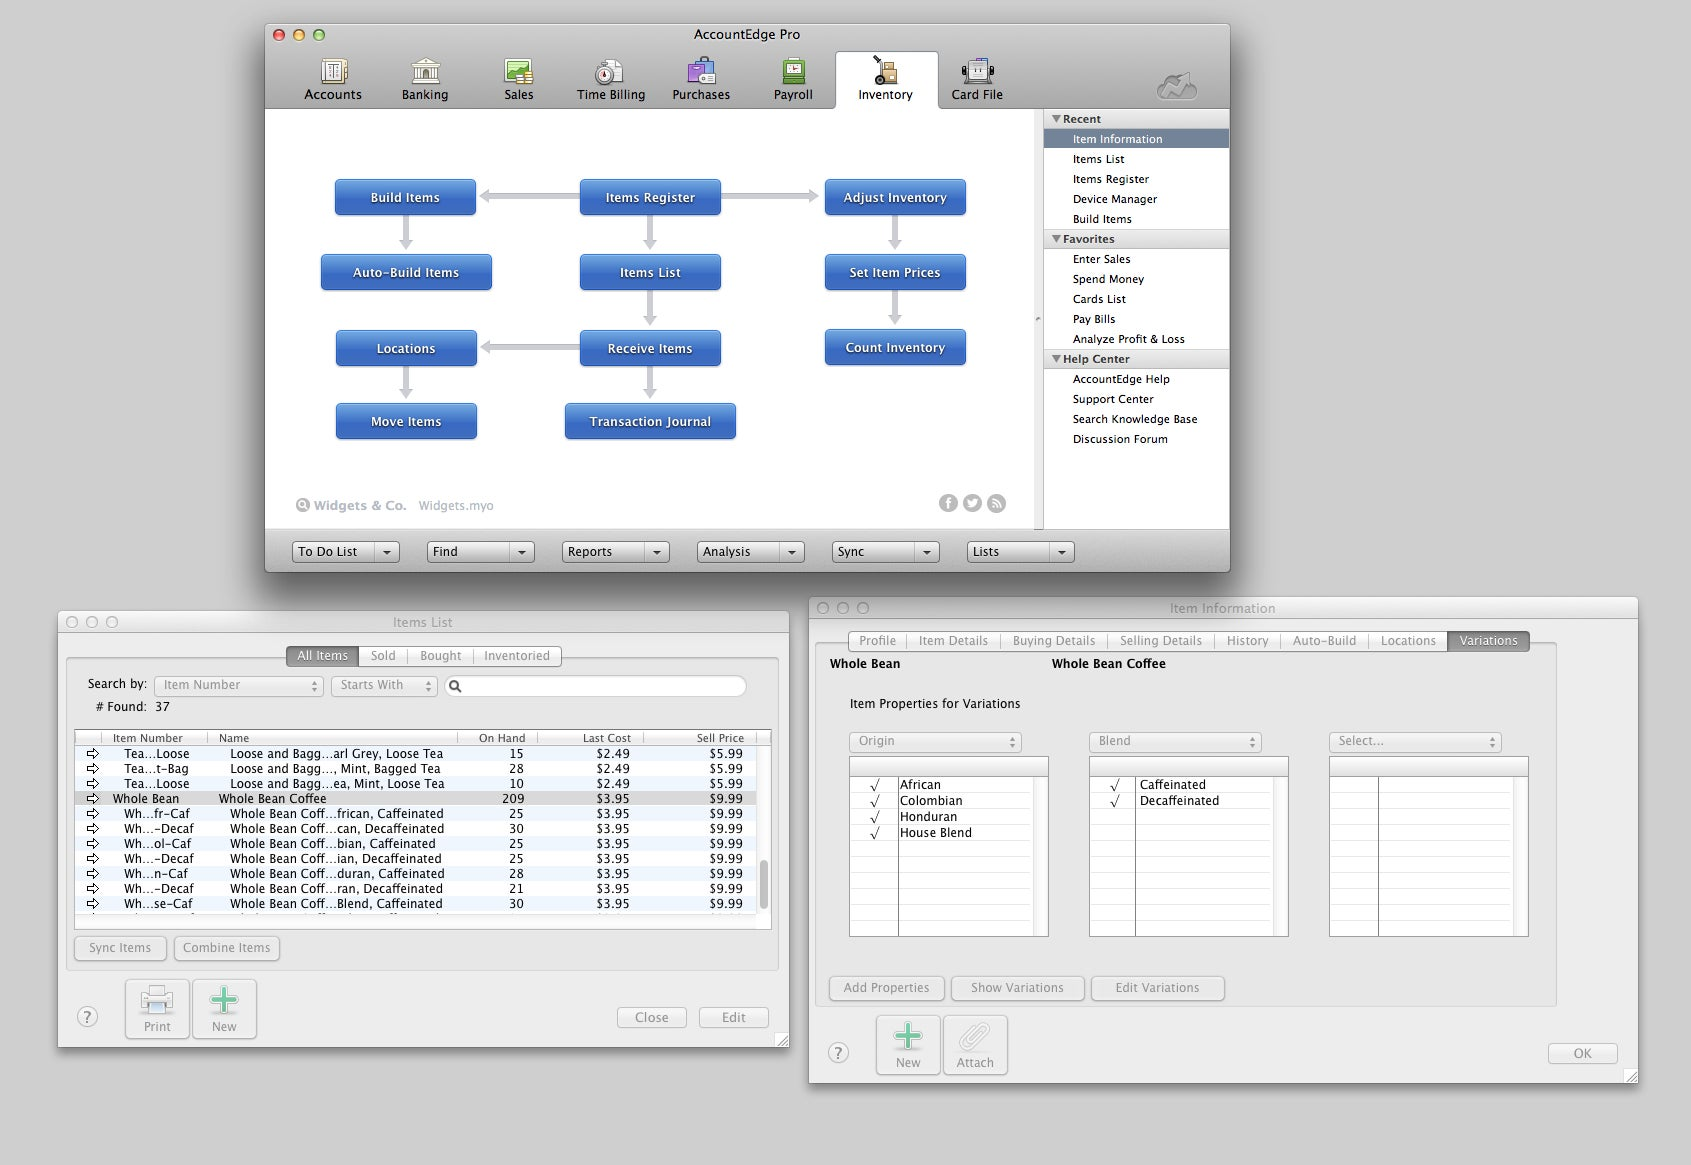 2014 accounts sba What's new in reckon accounts 2014it's a pleasure to announce to you our latest version of our accounts software, reckon accounts 2014, is ready for pur.